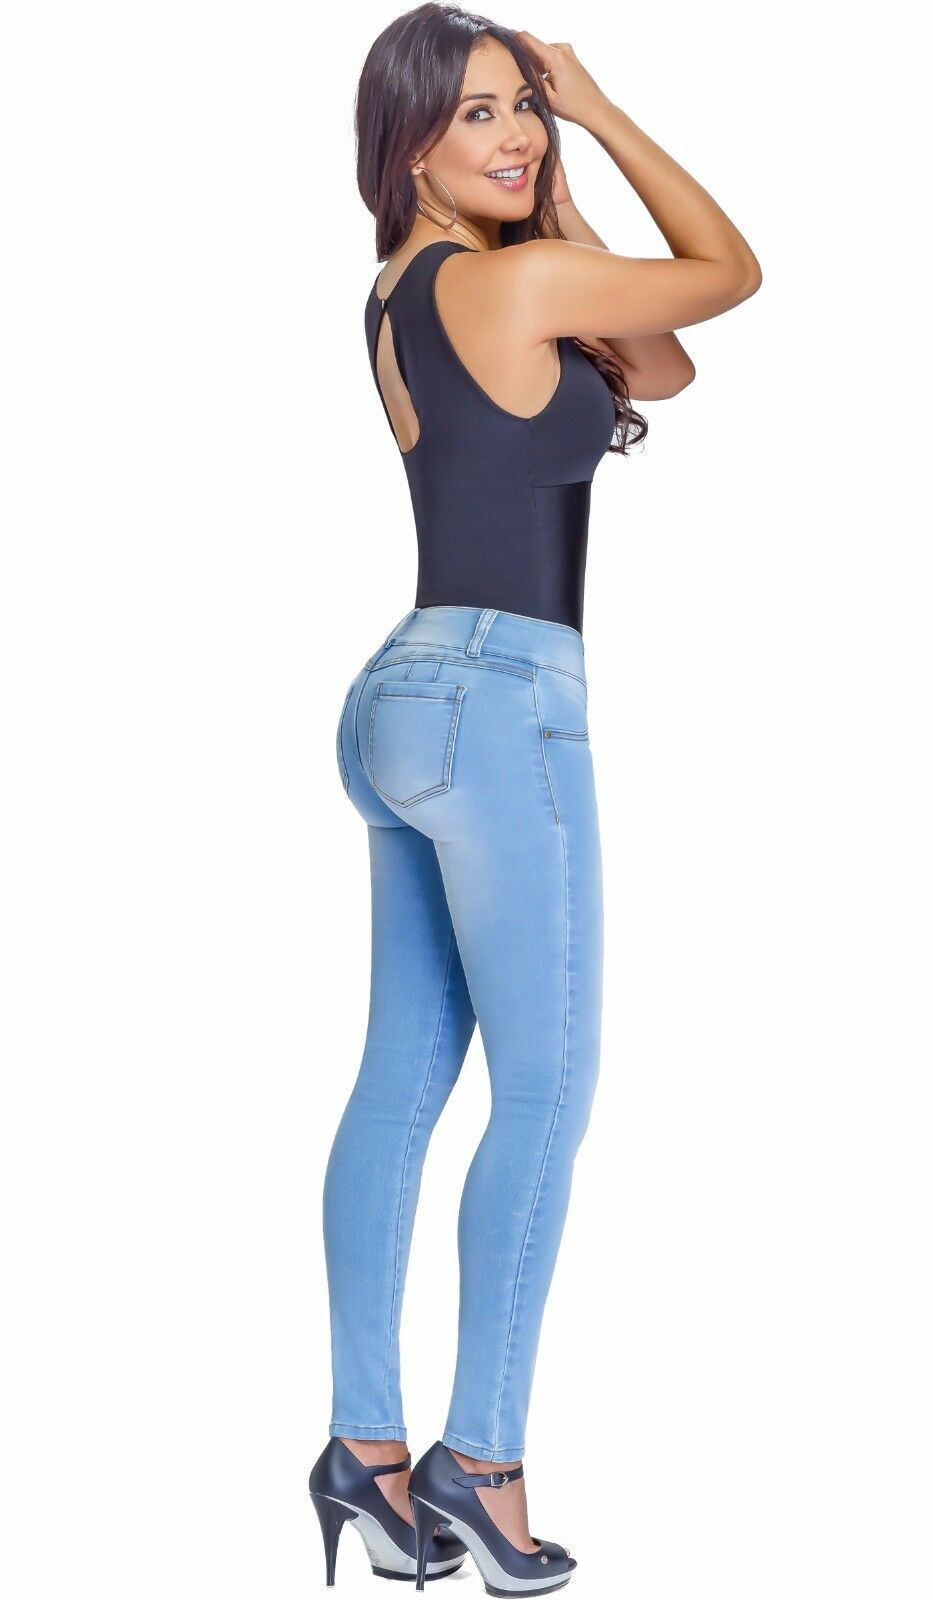 fbe4f02cd ... Jean Levanta Cola Colombiano Lowla 217988 Butt Lifter Jeans Jeans Jeans  With Removable Pads 74c3be